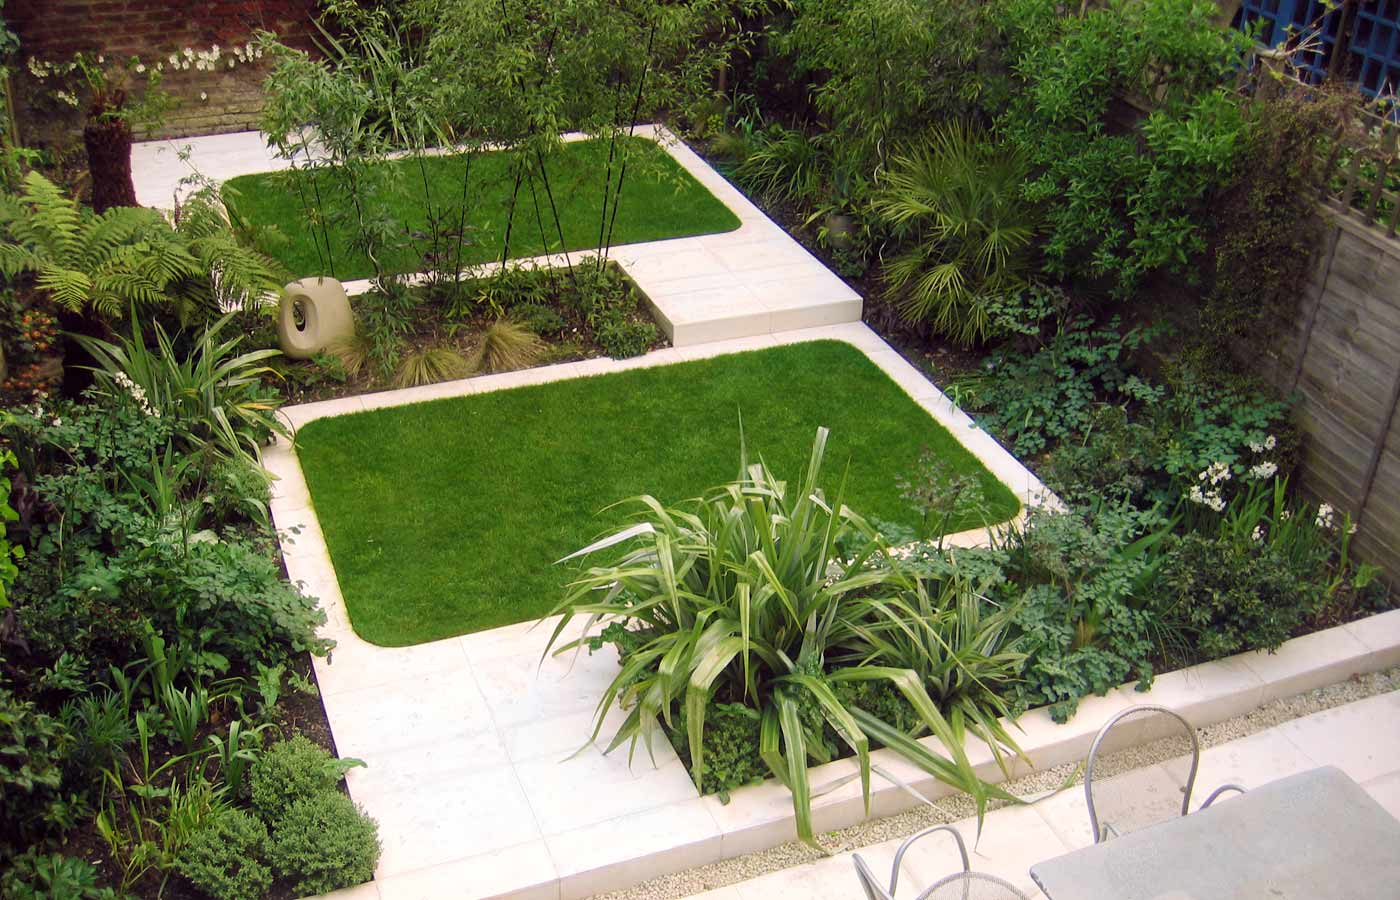 Modern town garden design north facing garden design for Design in garden